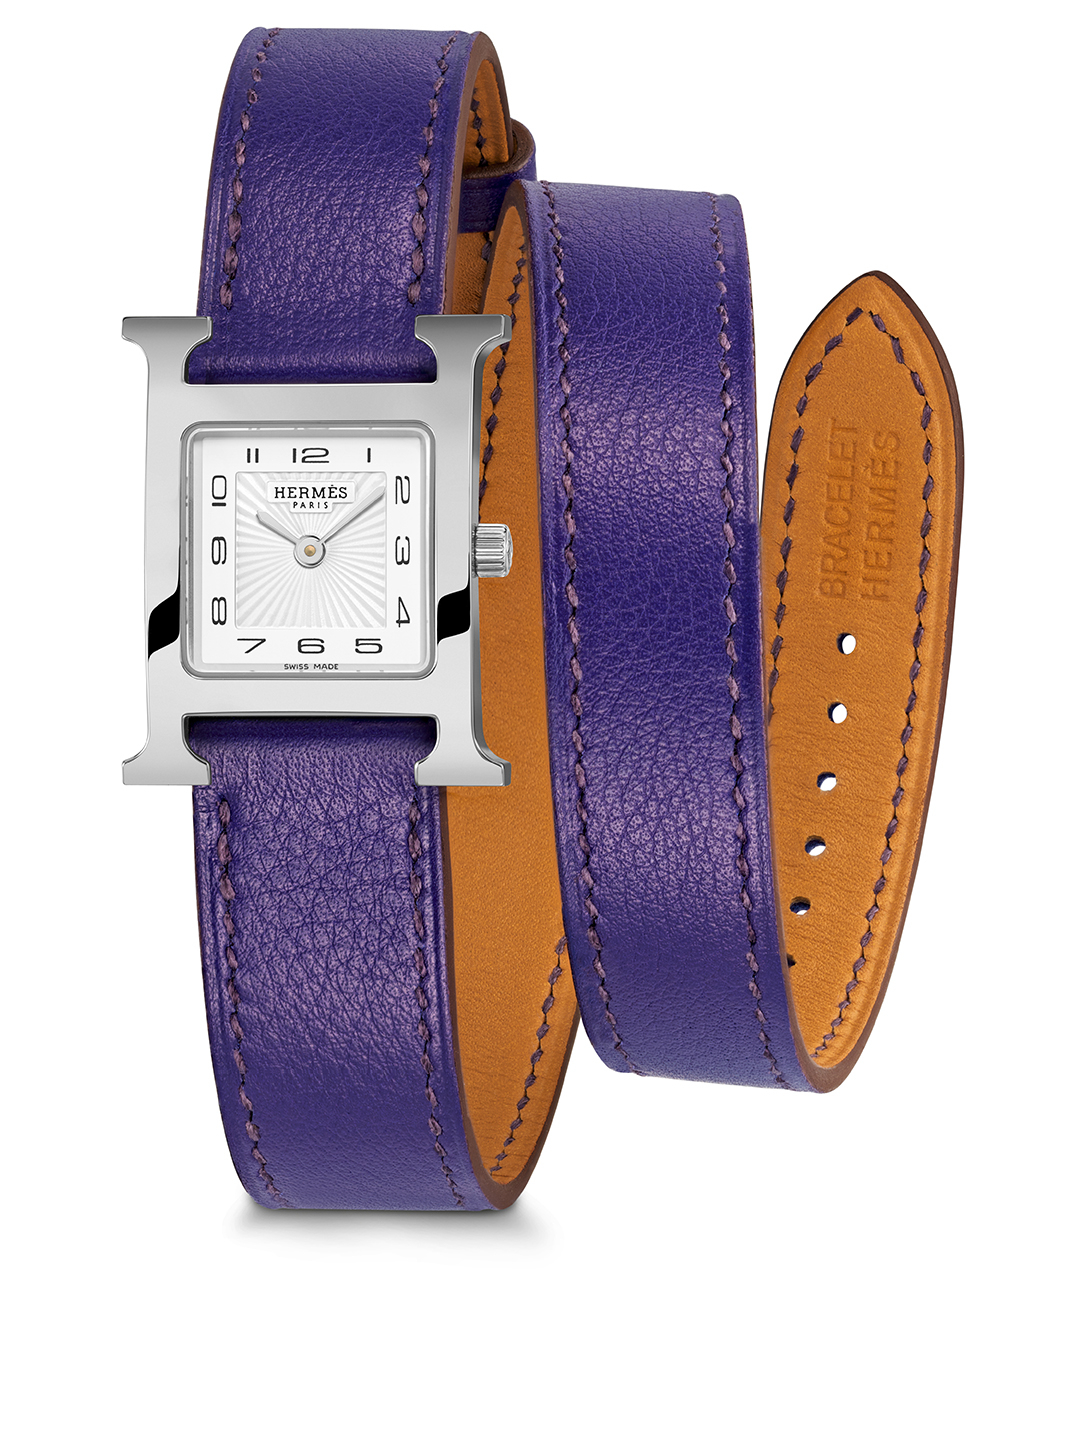 HERMÈS Small Heure H Stainless Steel Leather Wrap Strap Watch Women's Purple